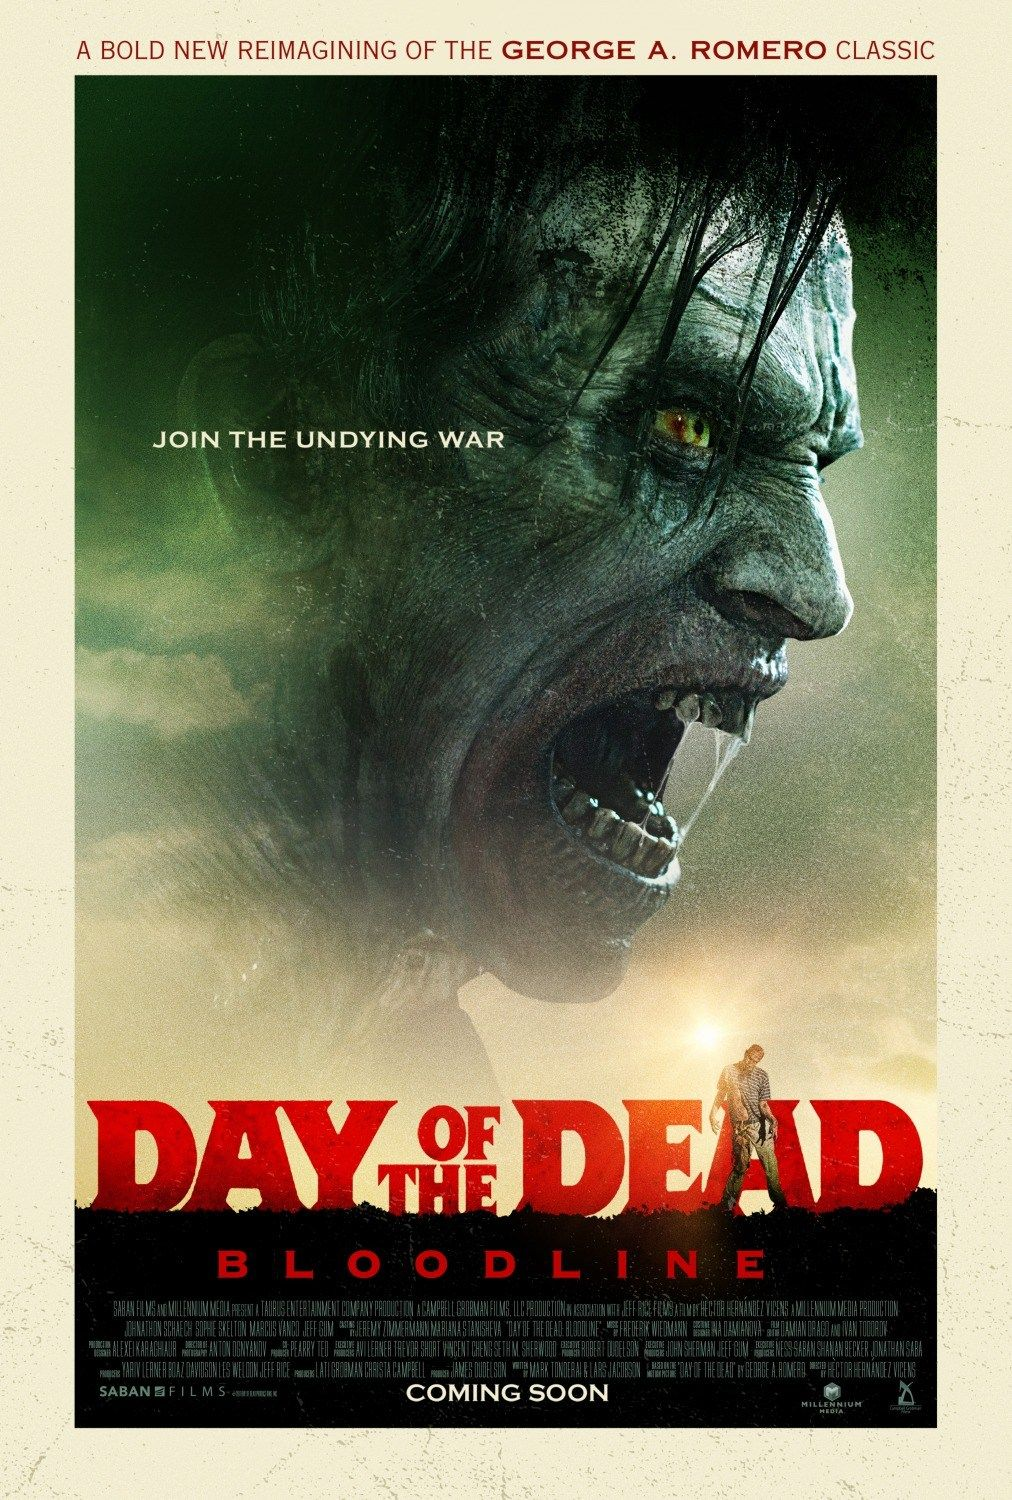 Castle Talk Day of the Dead Bloodline Brings You One